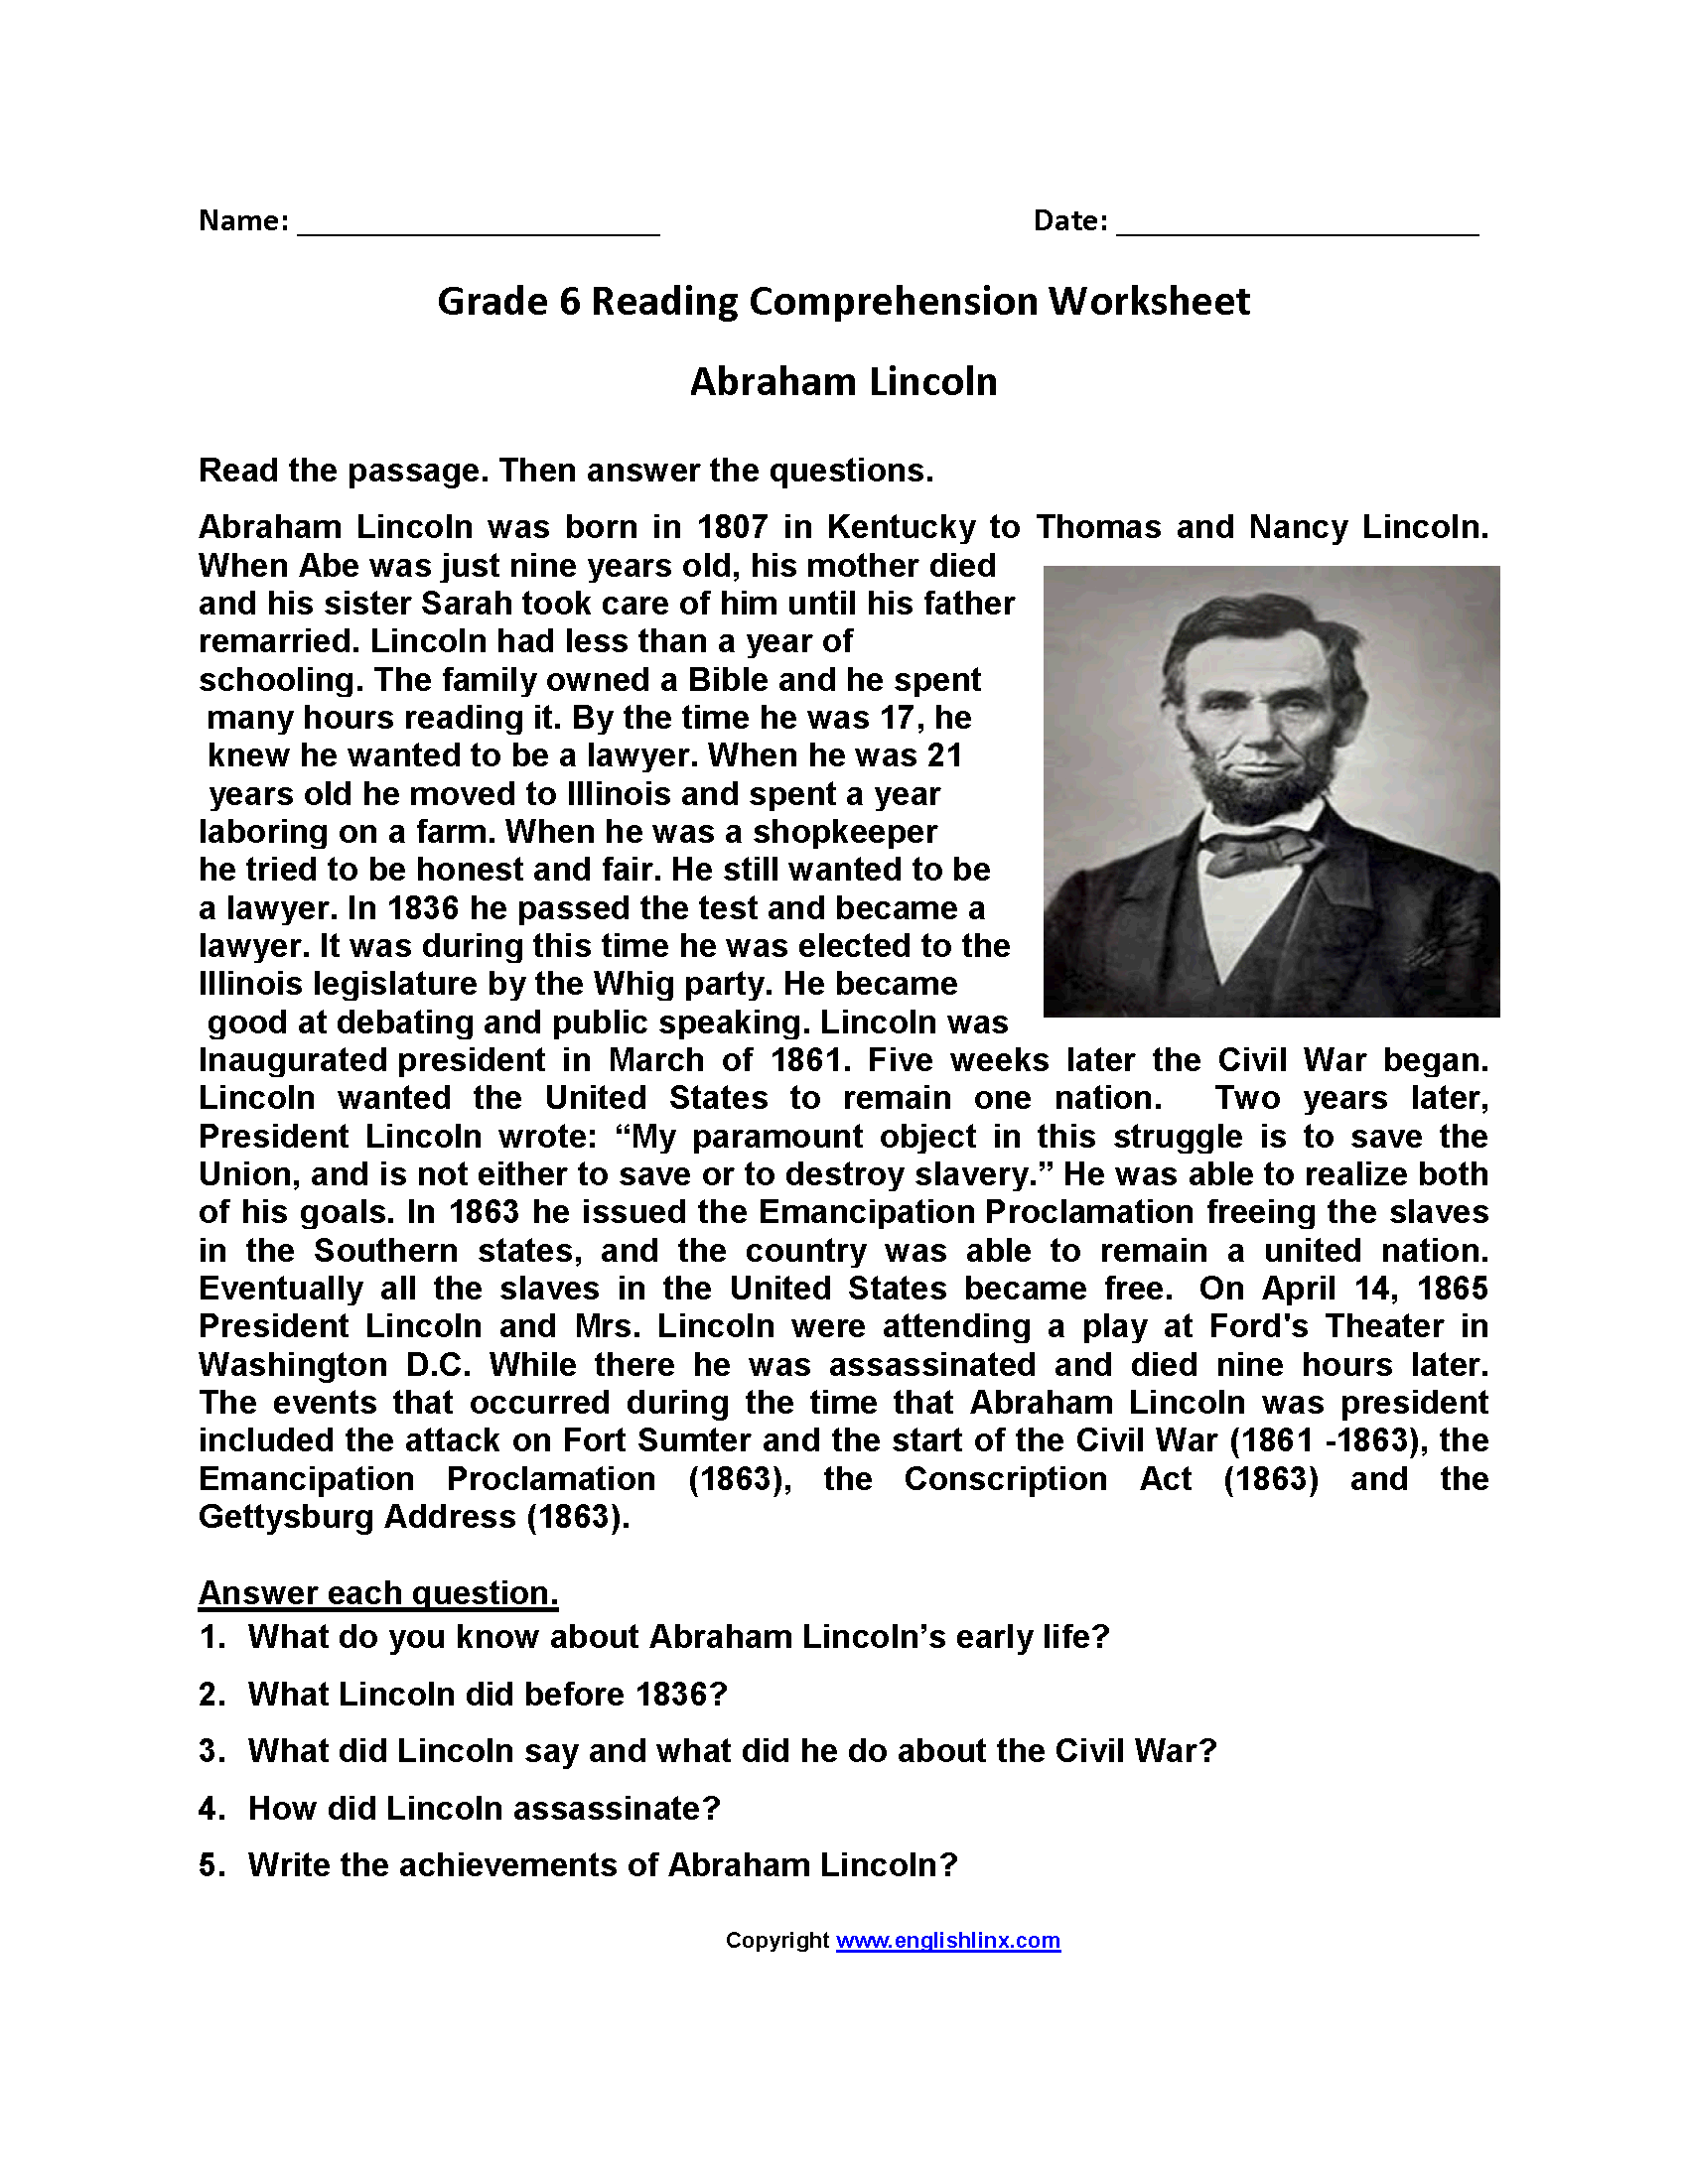 Worksheet Reading Comprehension Worksheets For 6th Grade